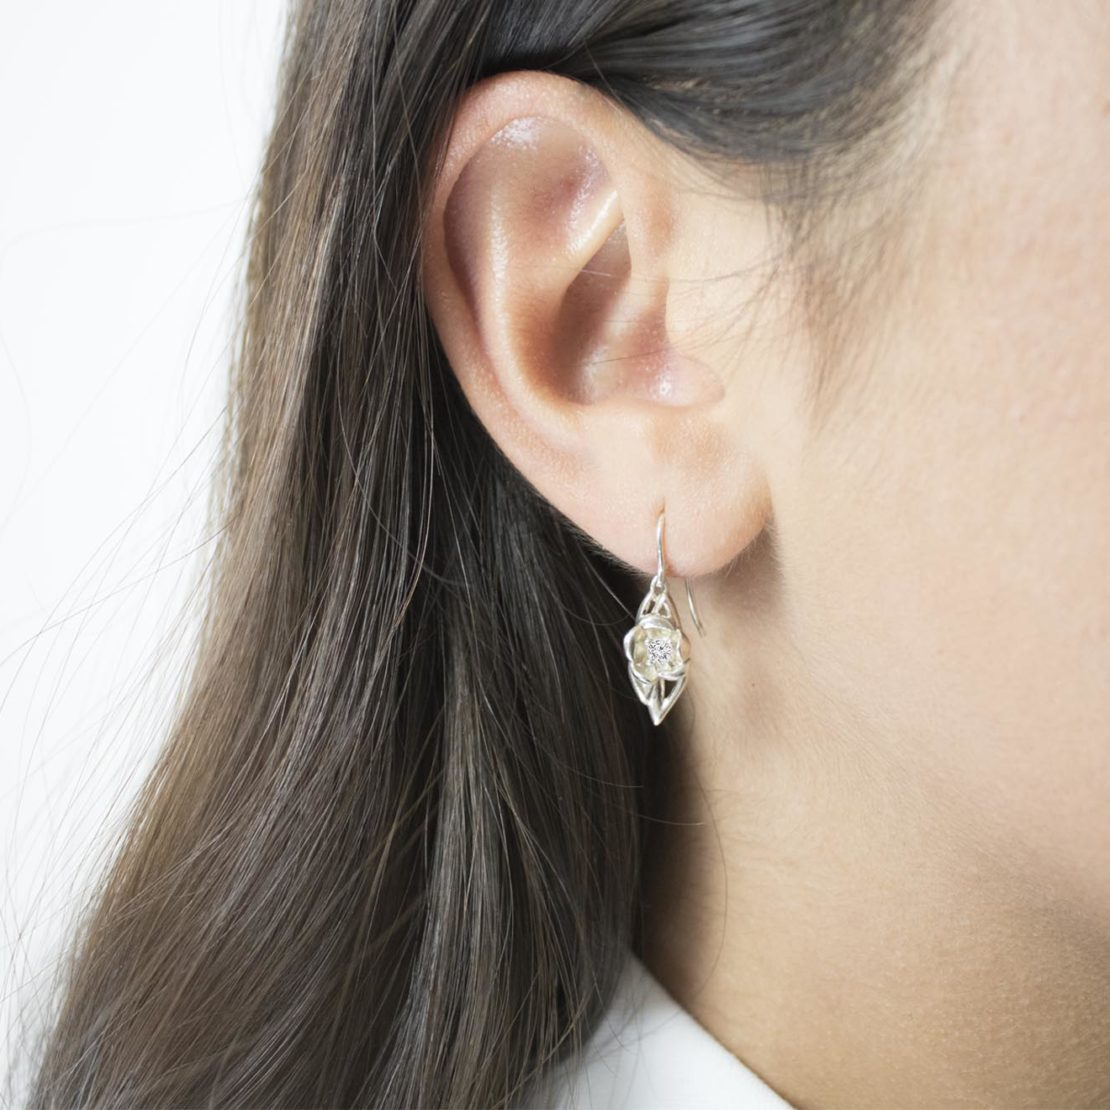 fiore Earrings Silver